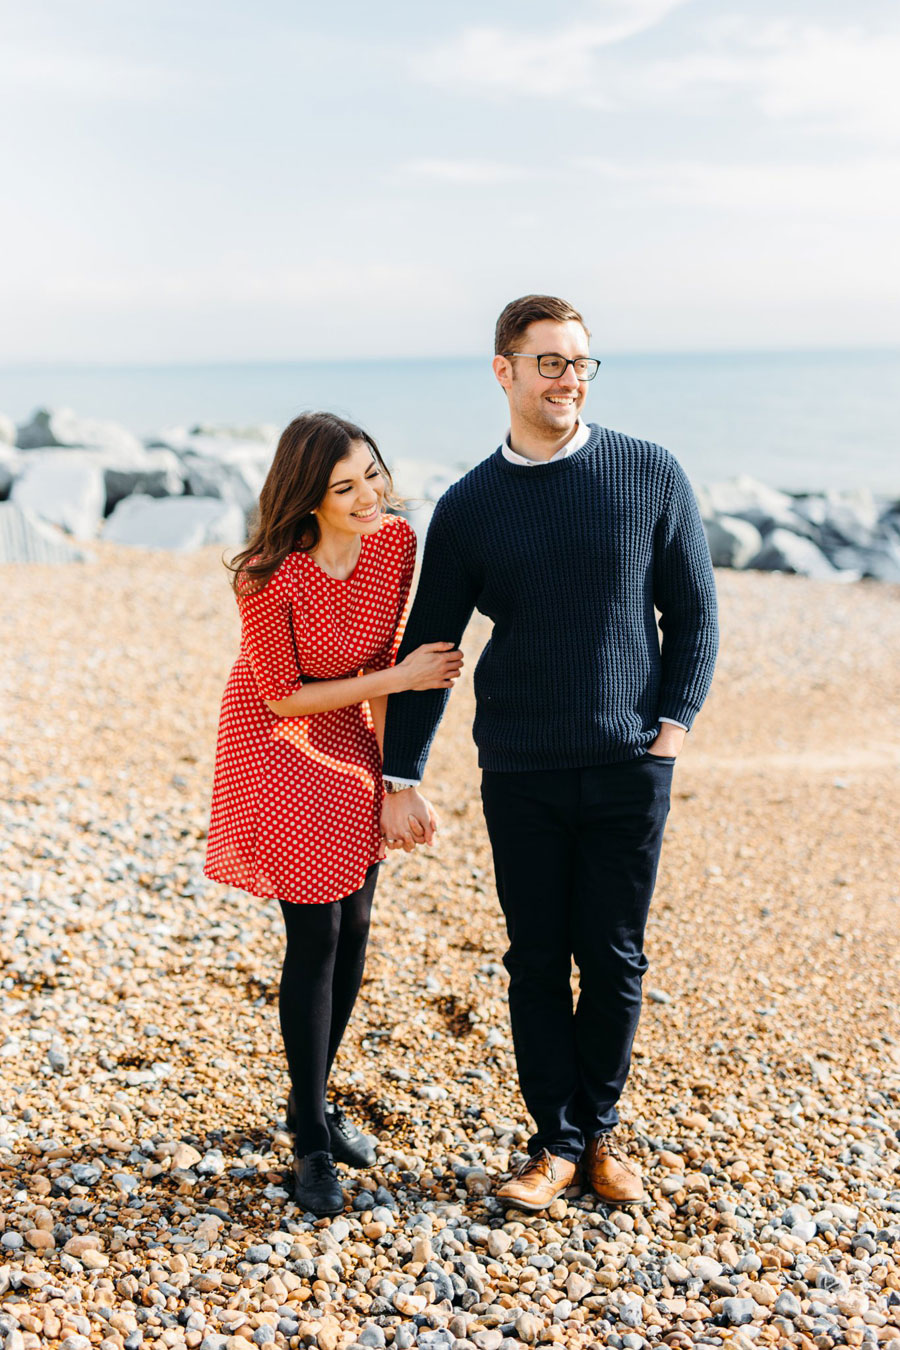 Shoreham Beach & Brighton Bandstand Engagement- Mike & Amy0014